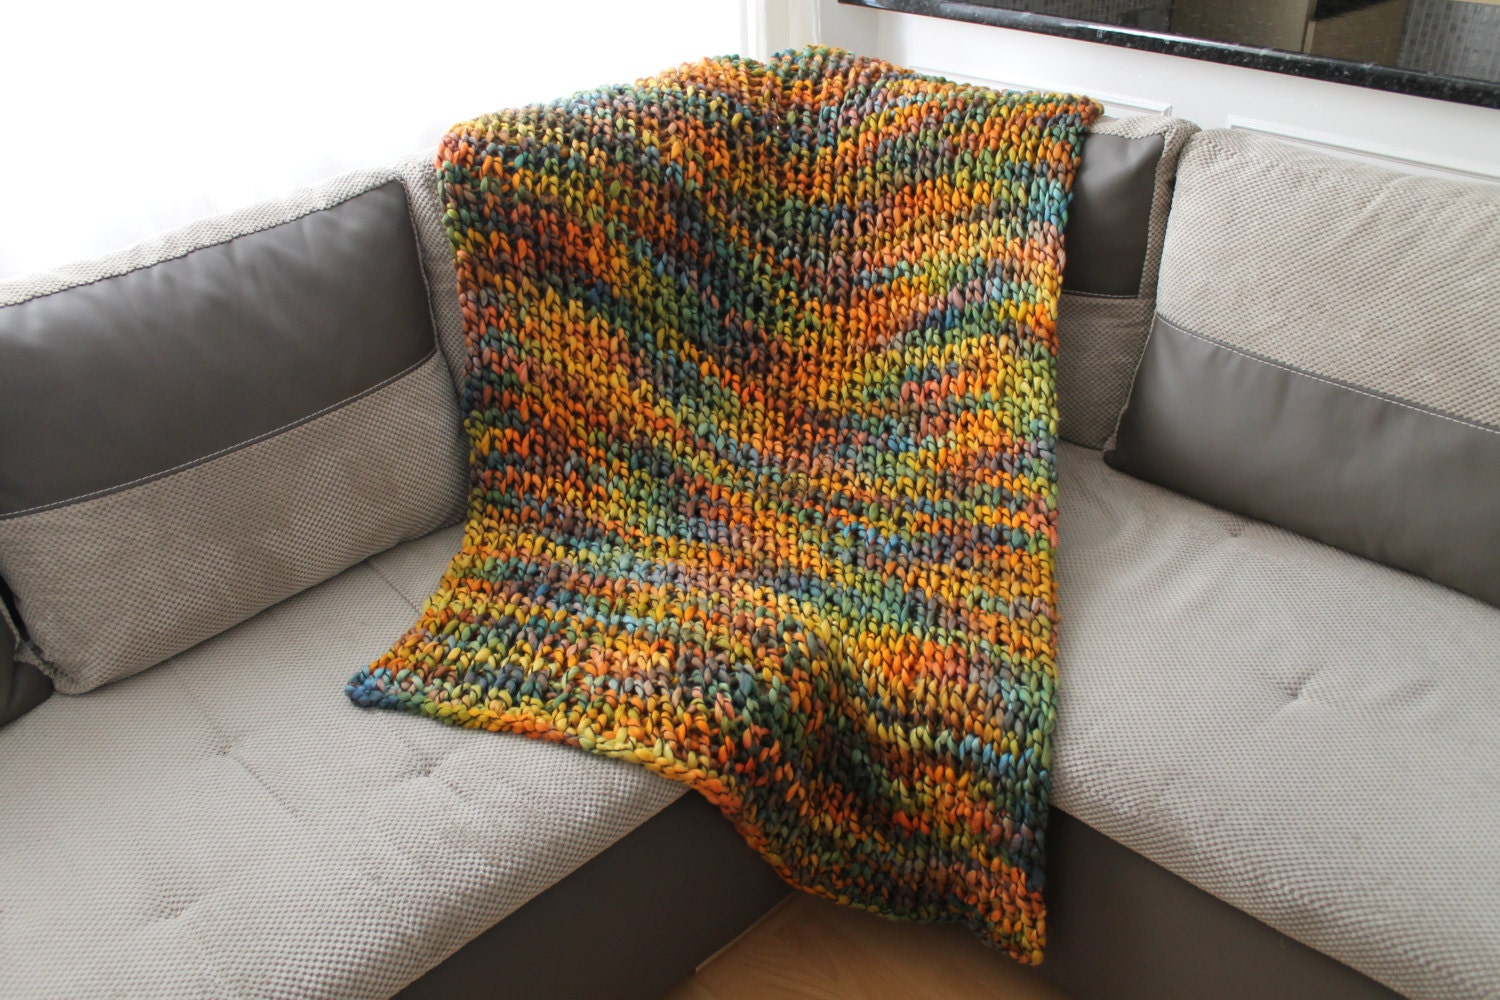 Knit Blanket Pattern Super Bulky : Chunky Knit Blanket Super Bulky Blanket Adult Throw Blanket